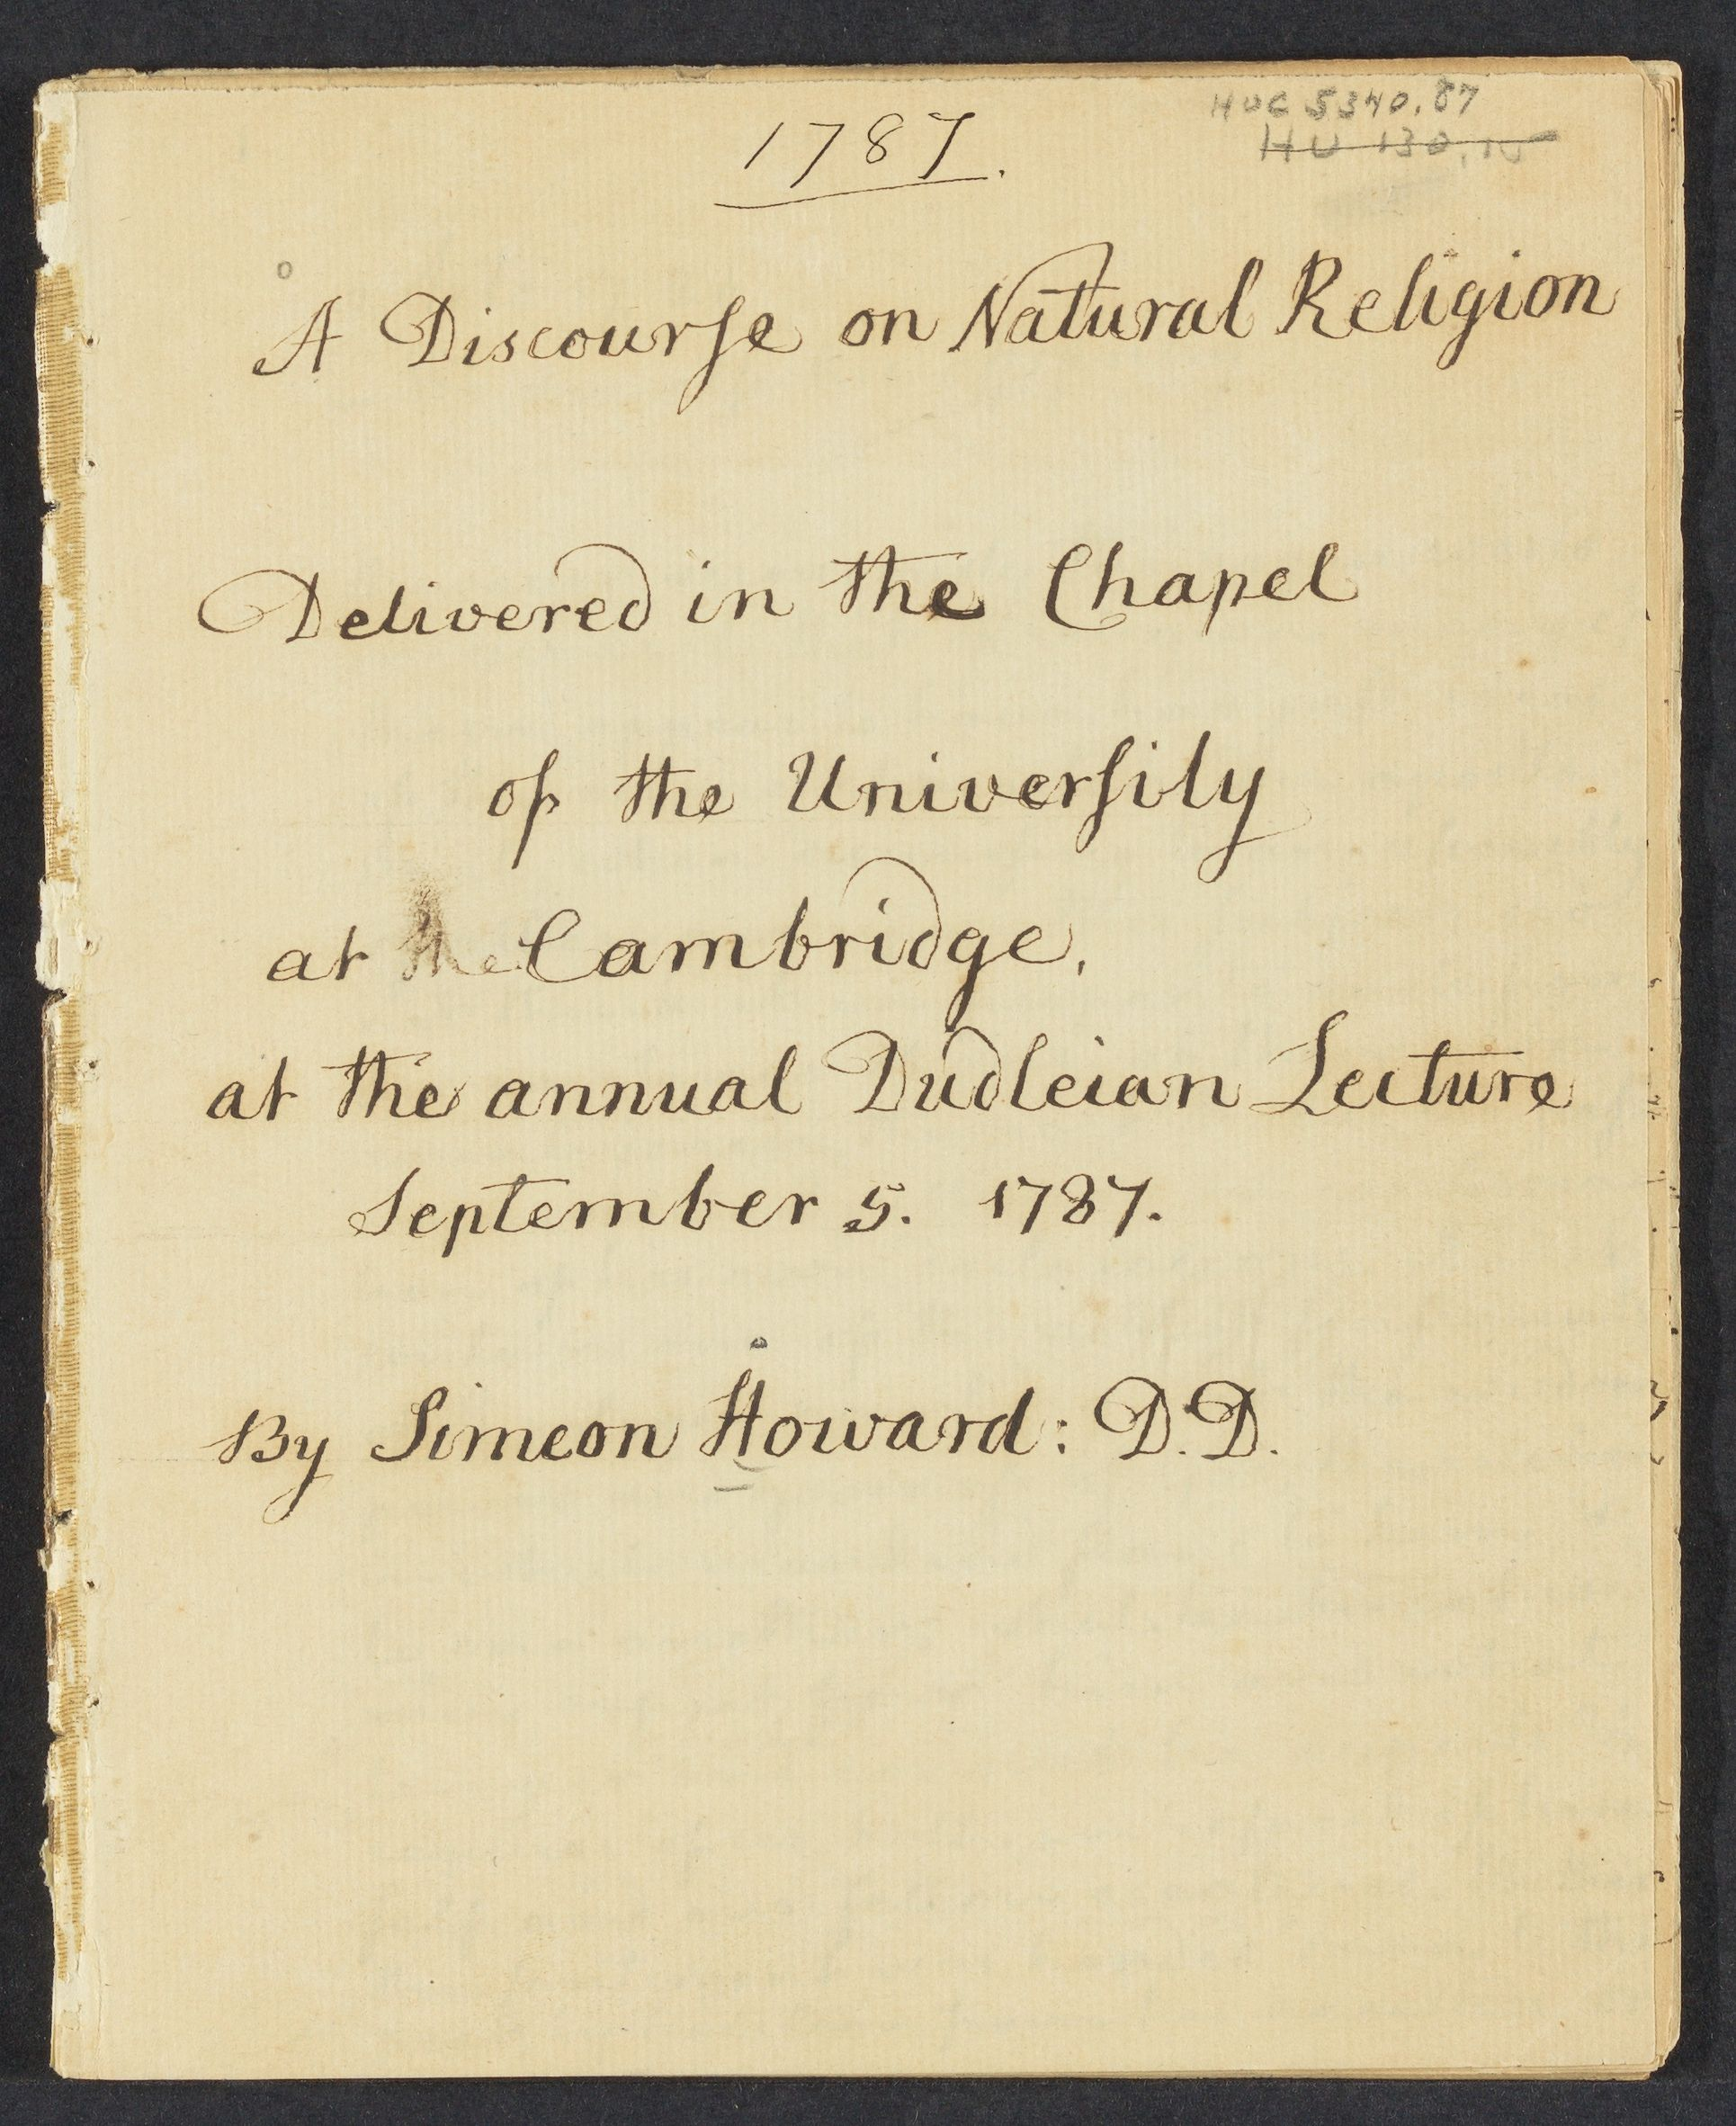 A  discourse on natural religion: delivered in the Chapel of the University at Cambridge, September 5, 1787